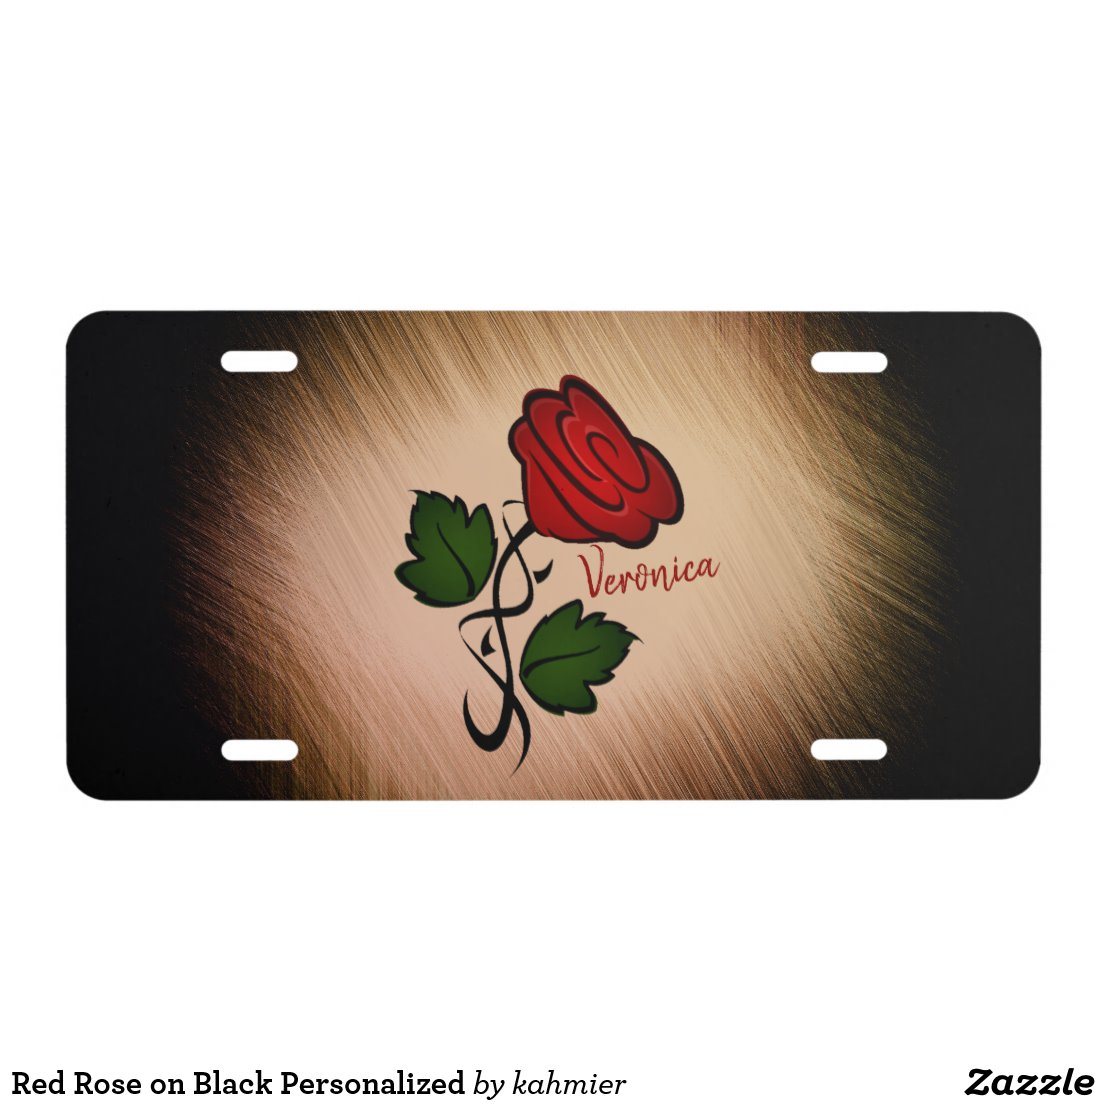 Red Rose on Black Personalized License Plate